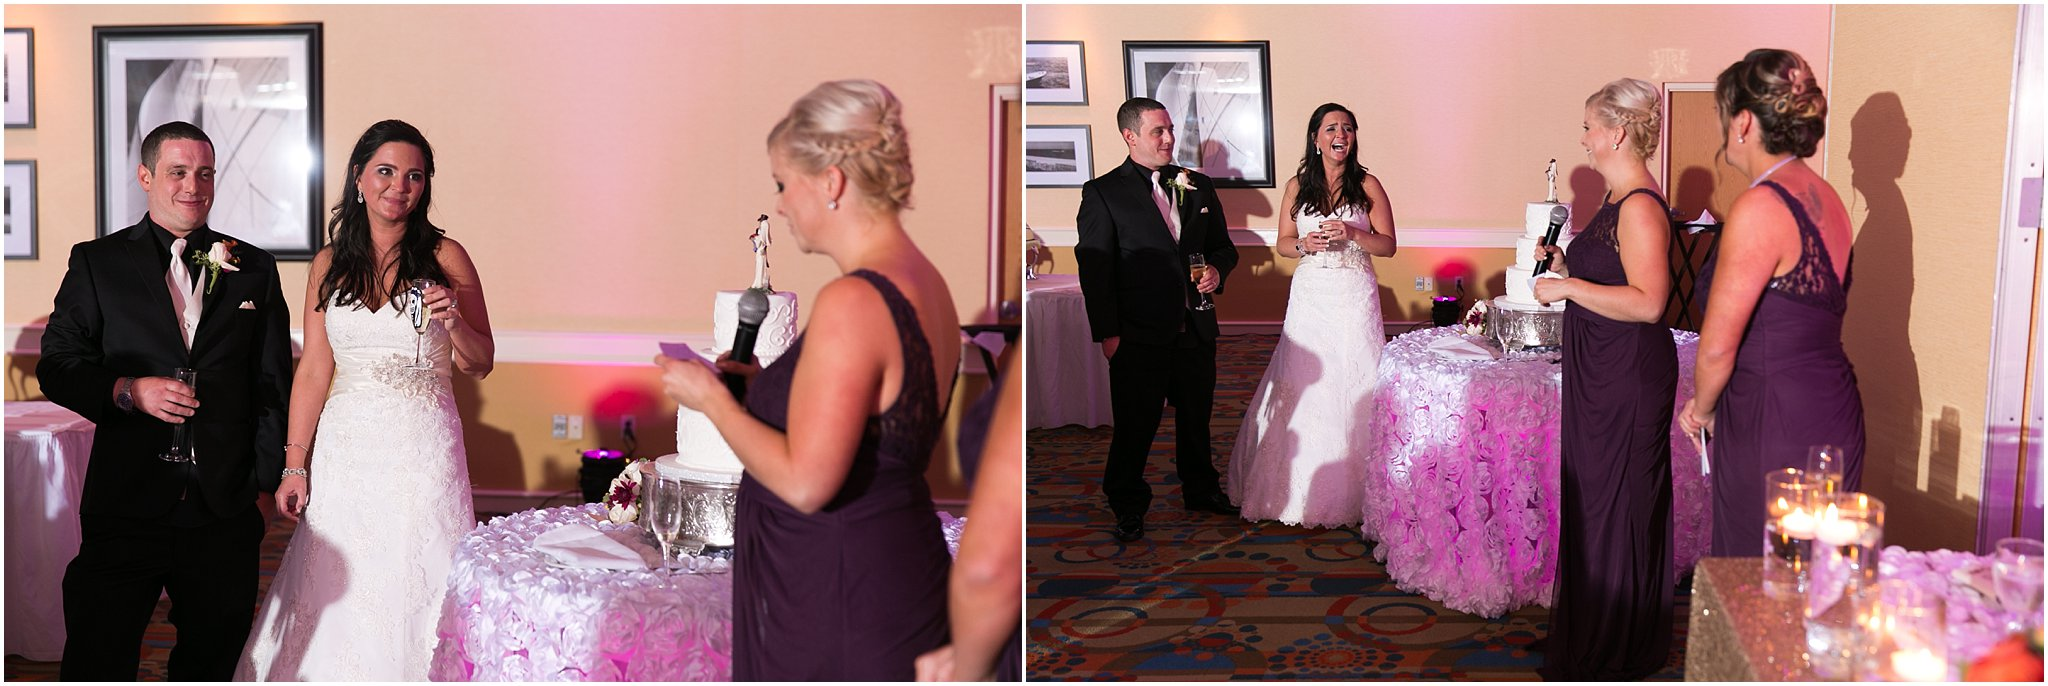 jessica_ryan_photography_wedding_virginia_beach_oceanfront_holiday_inn_north_suites_hotel_wedding_0710